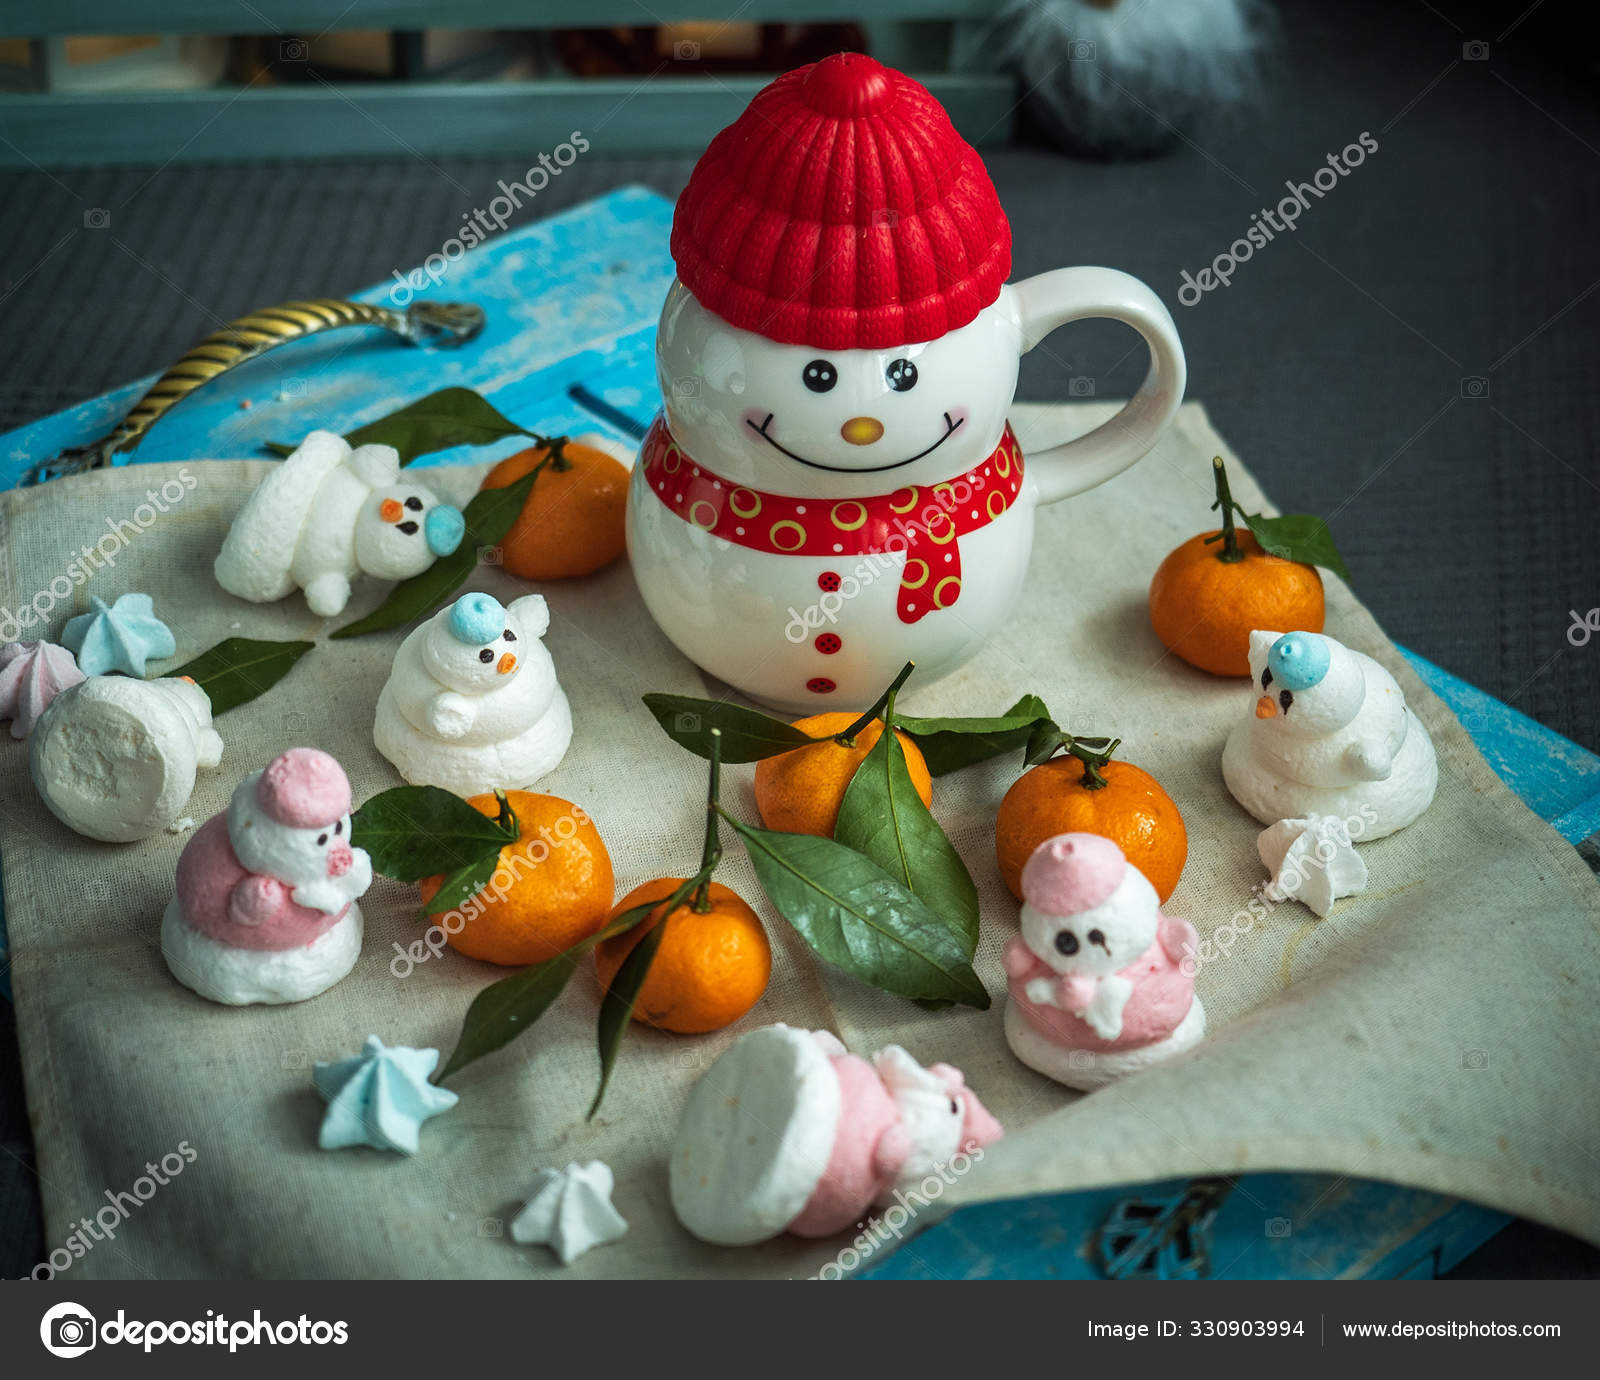 Merry Christmas Mug And Meringue Cookies In The Form Of Snowmen And Tangerines On A Napkin And Rustic Tray Stock Photo C Fotom 911 Bk Ru 330903994